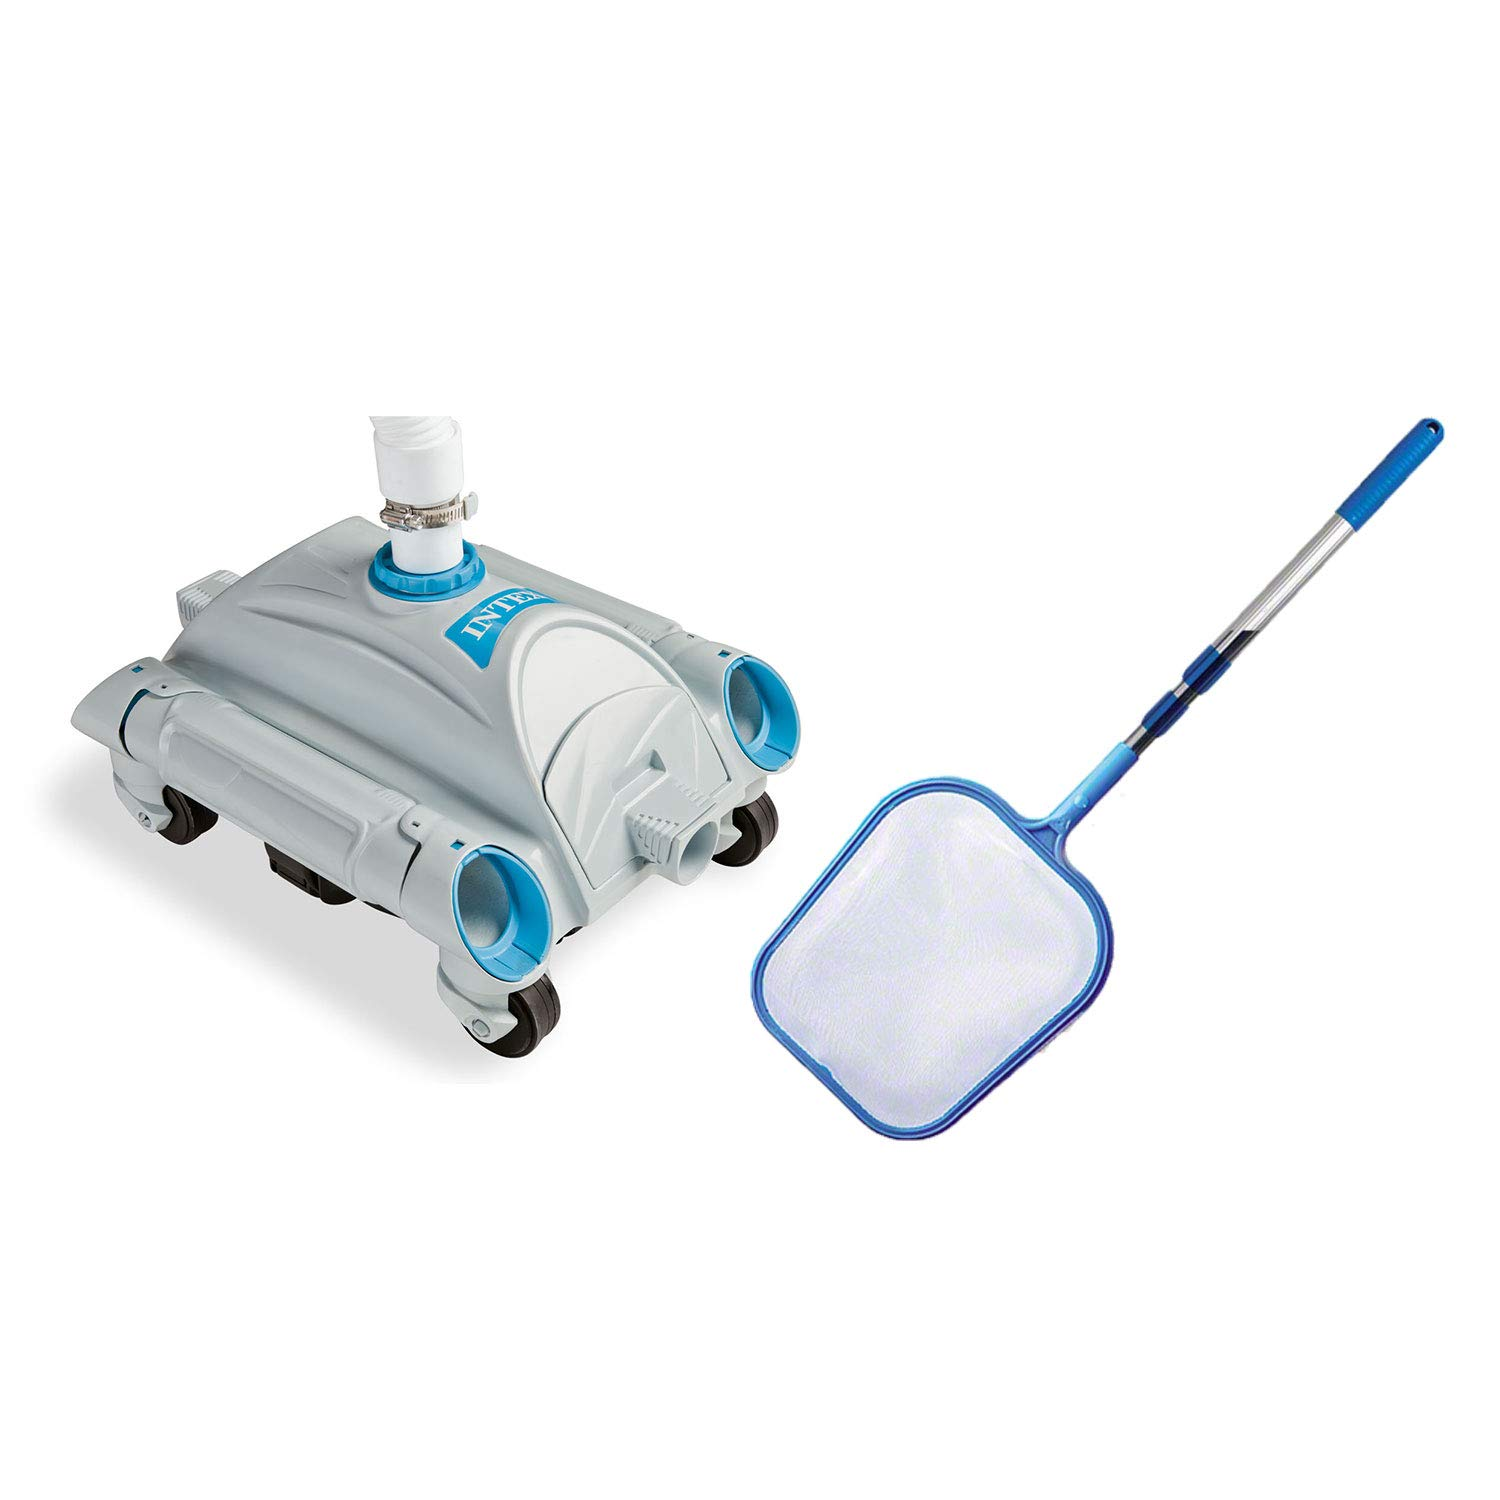 Intex Automatic Above-Ground 1,600-3,500 GPH Pool Vacuum with Pool Skimmer Net by Intex